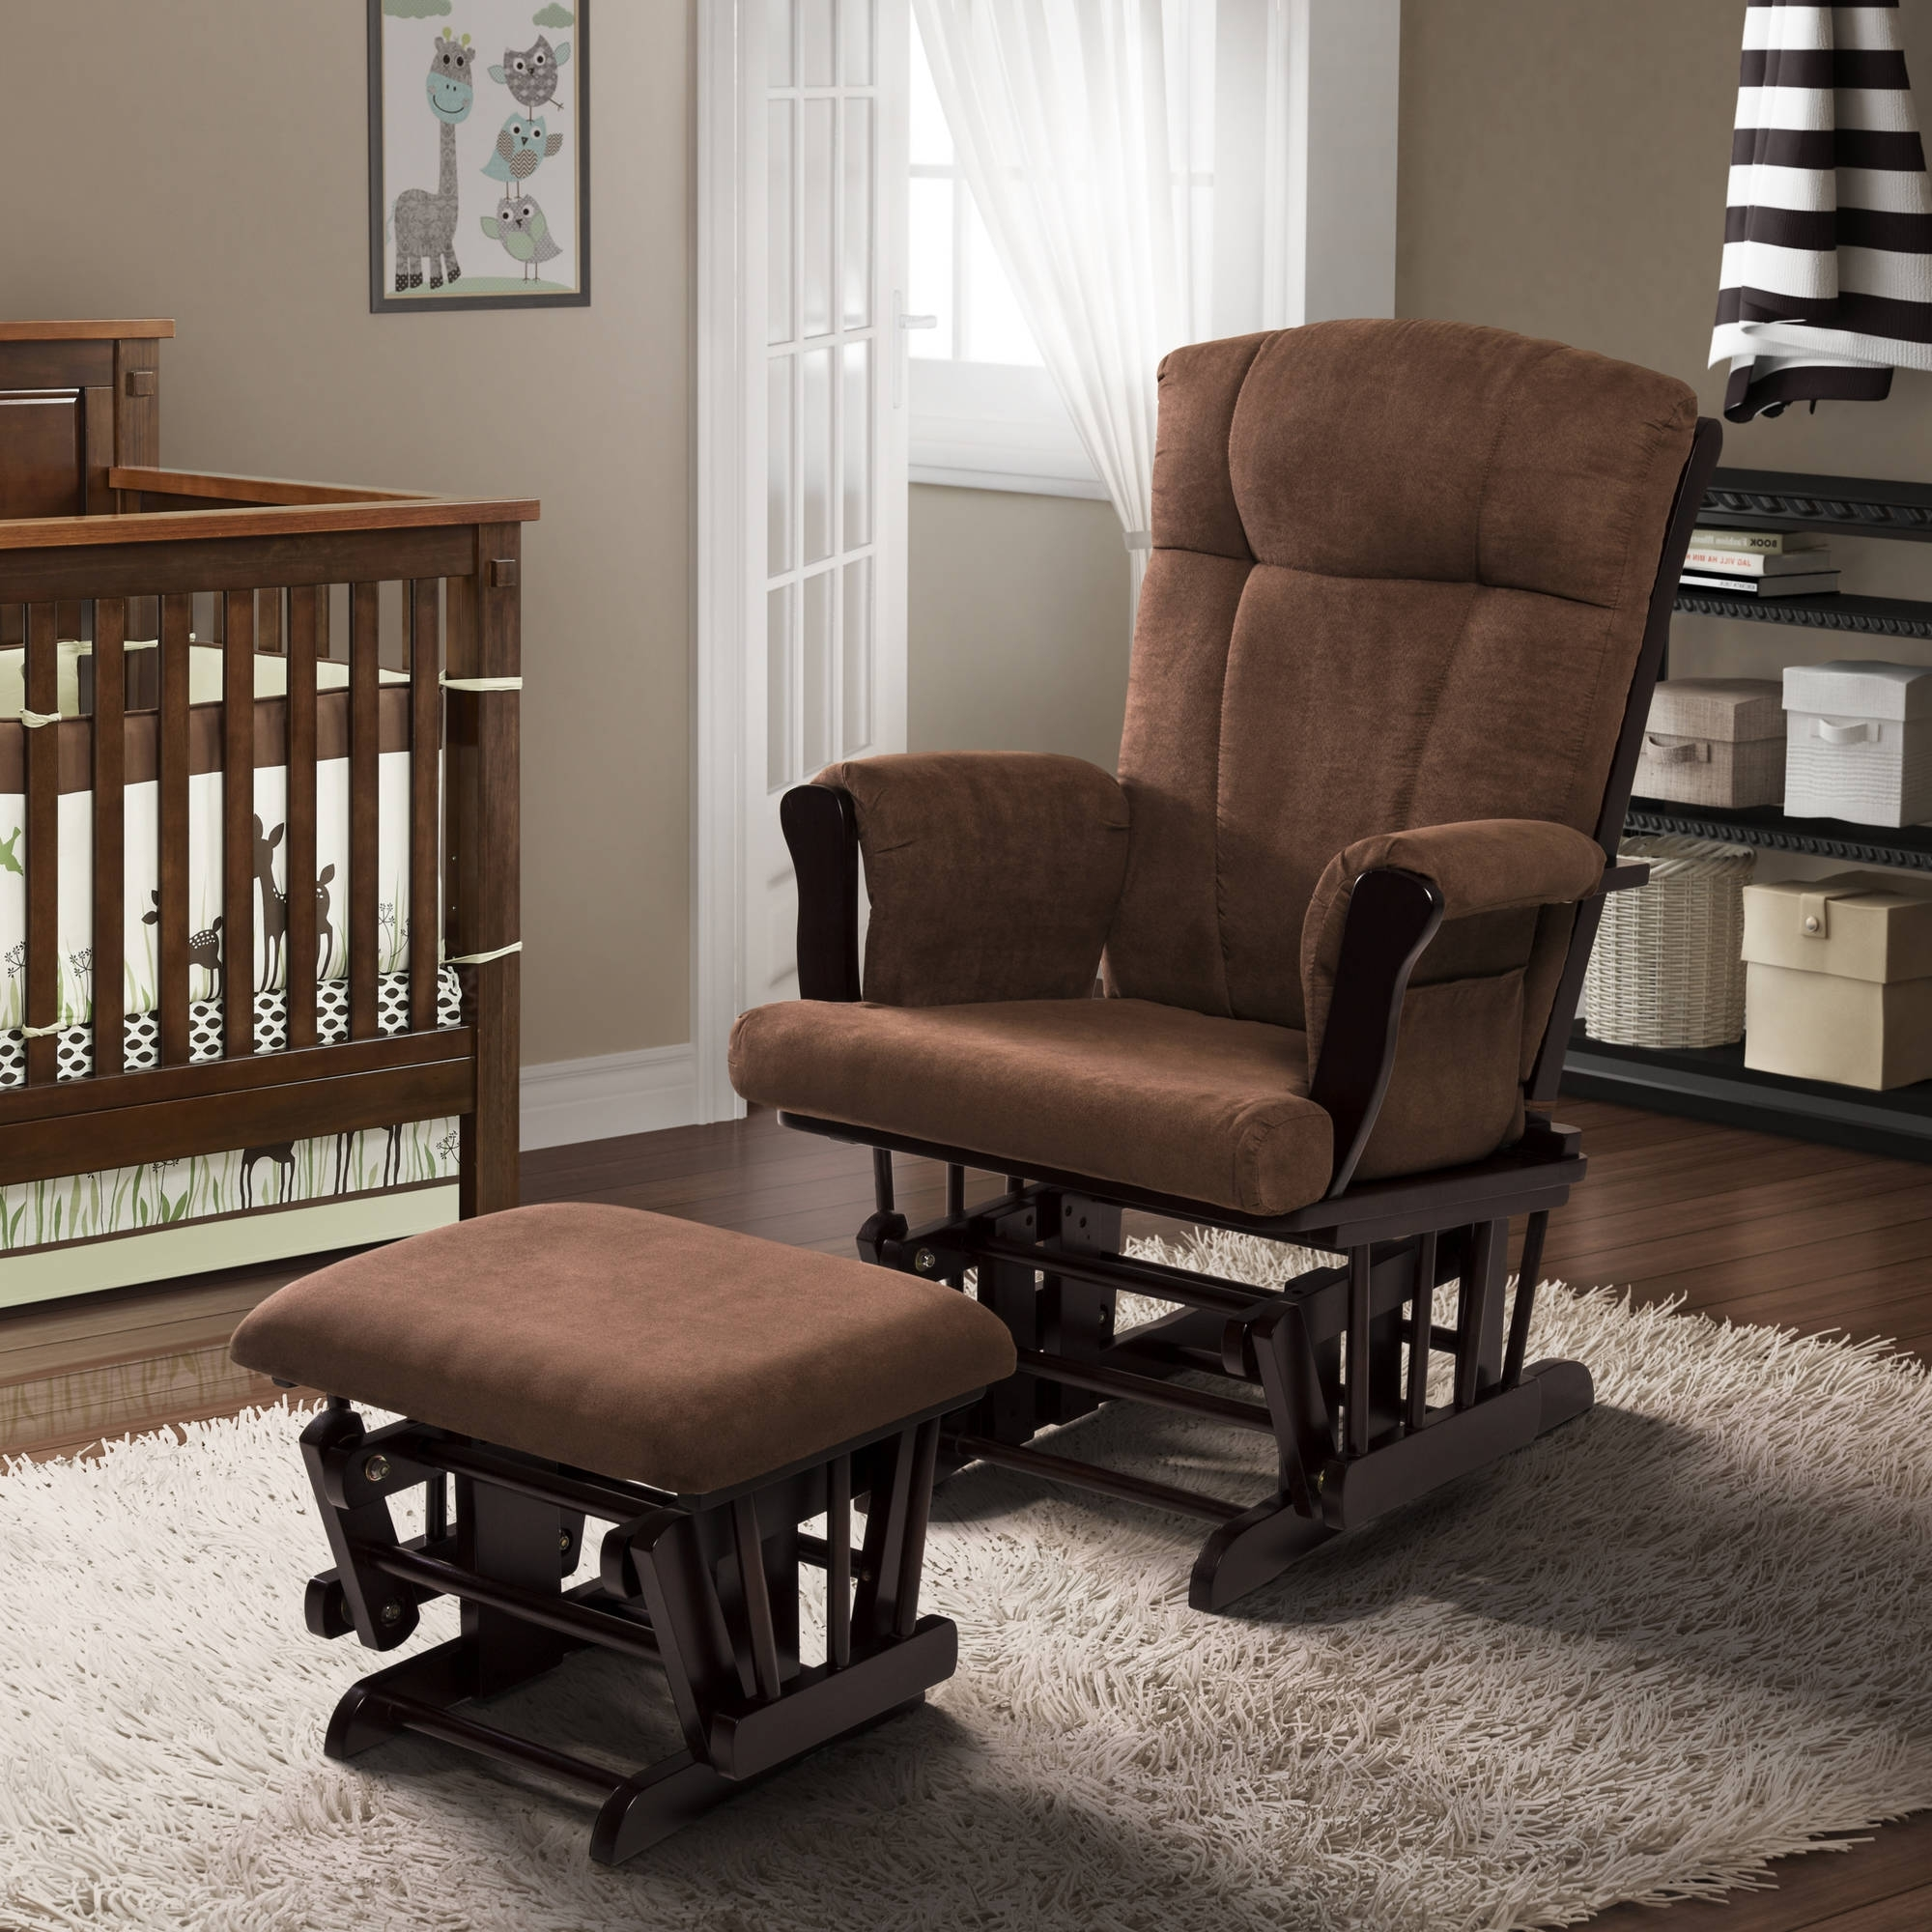 Walmart Rocking Chairs Inside Preferred Baby Relax Glider Rocker And Ottoman Espresso With Chocolate (View 11 of 15)